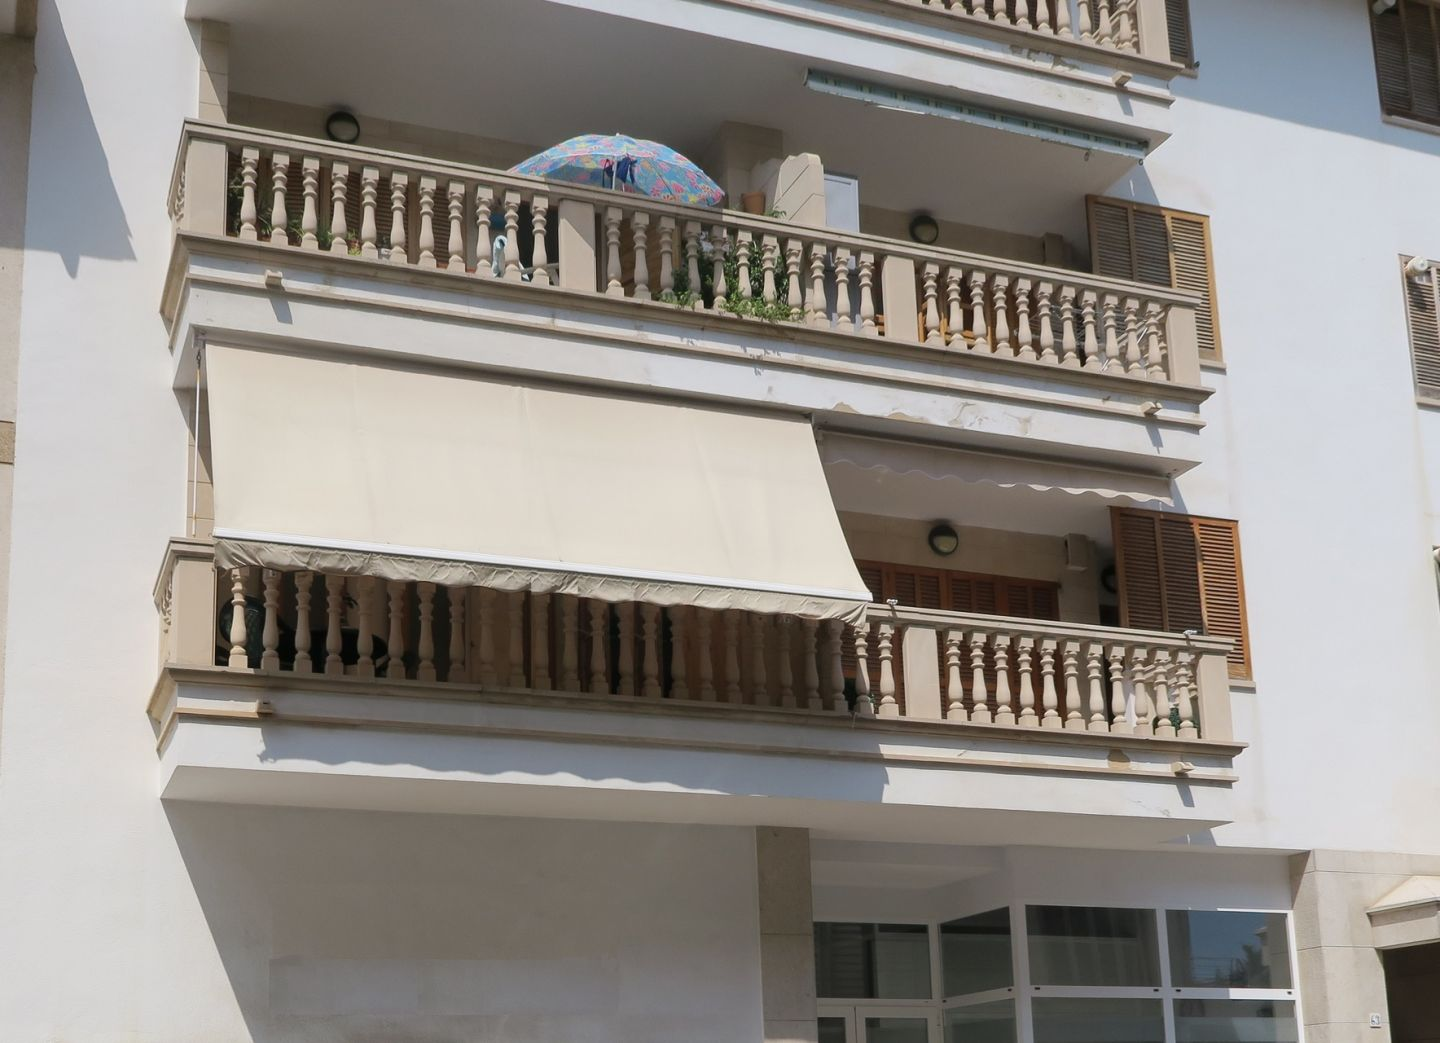 2 Bed Apartment for sale in PUERTO POLLENSA 1